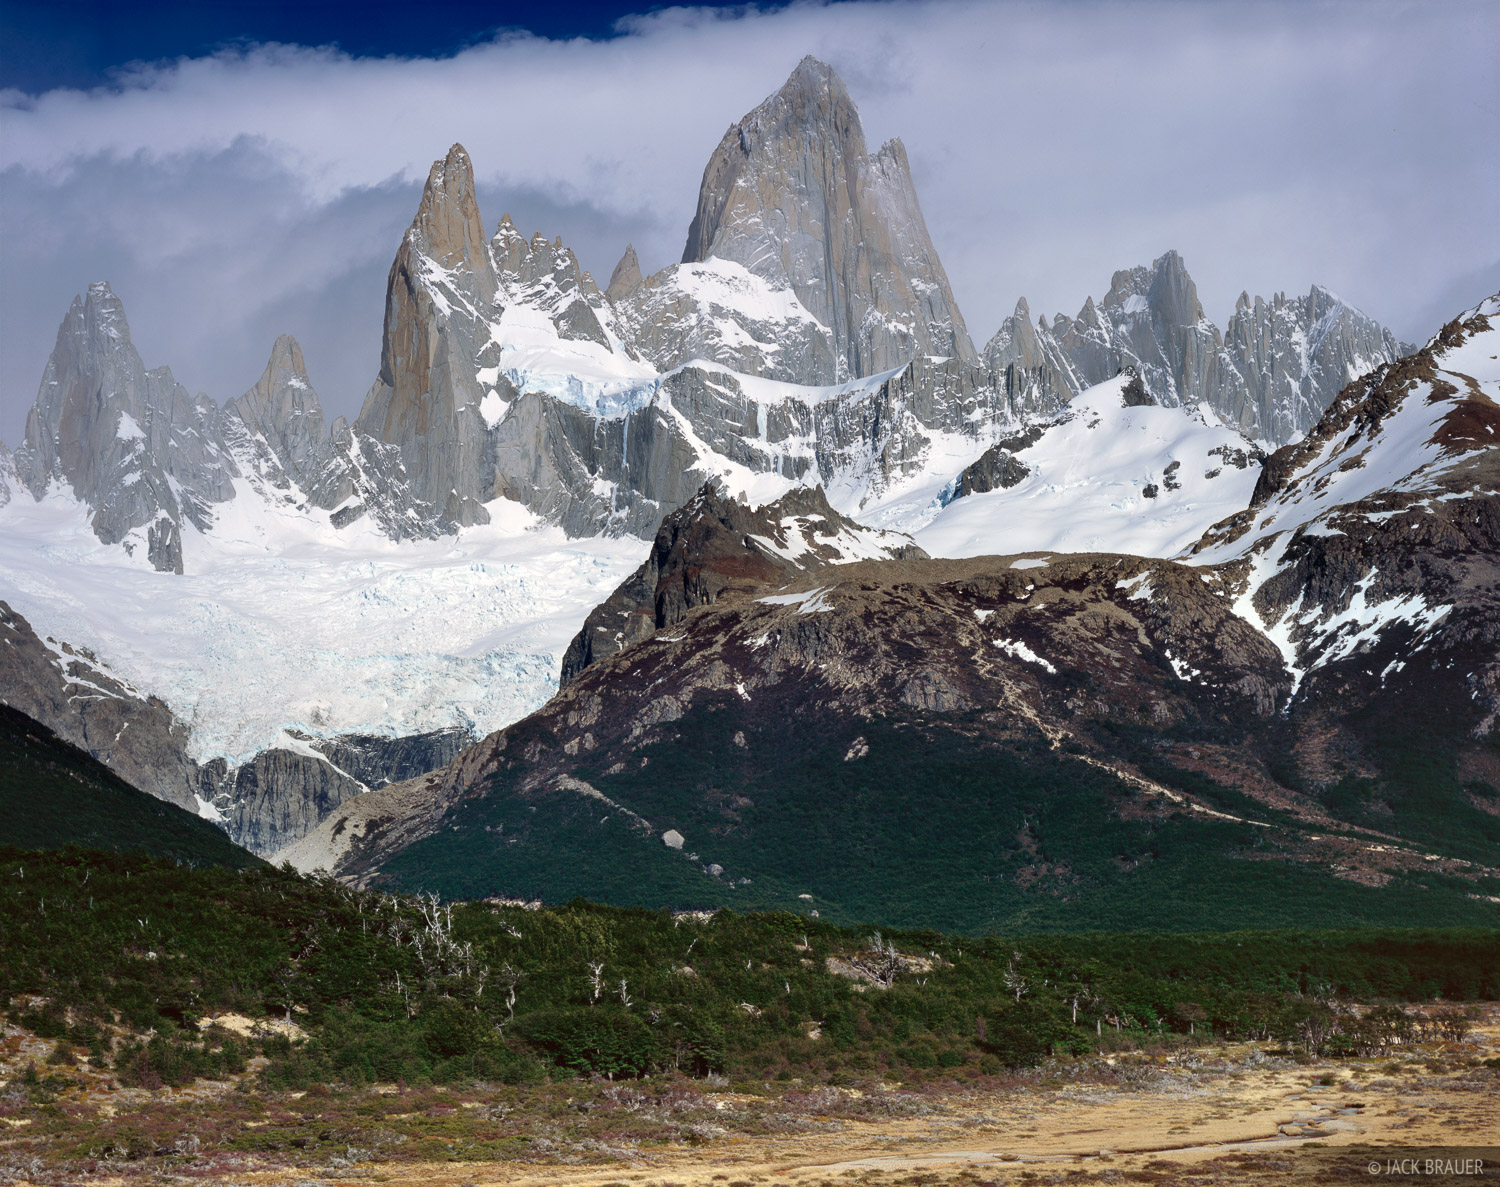 Patagonia South America >> Monte Fitz Roy | Patagonia, Argentina | Mountain Photography by Jack Brauer